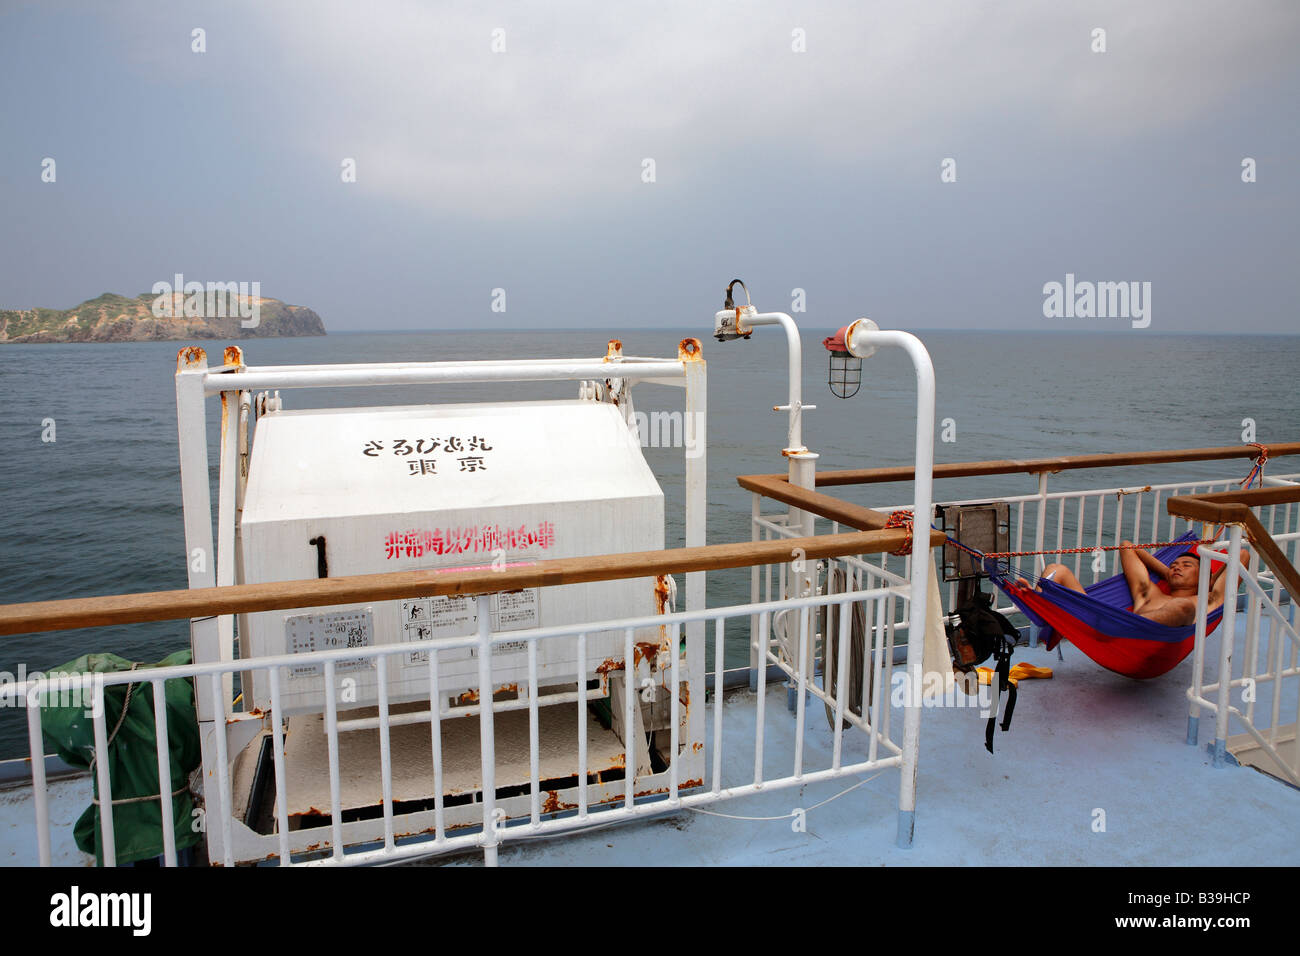 Japanese holiday makers on the ferry ferryboat to Shikinejima island - Stock Image